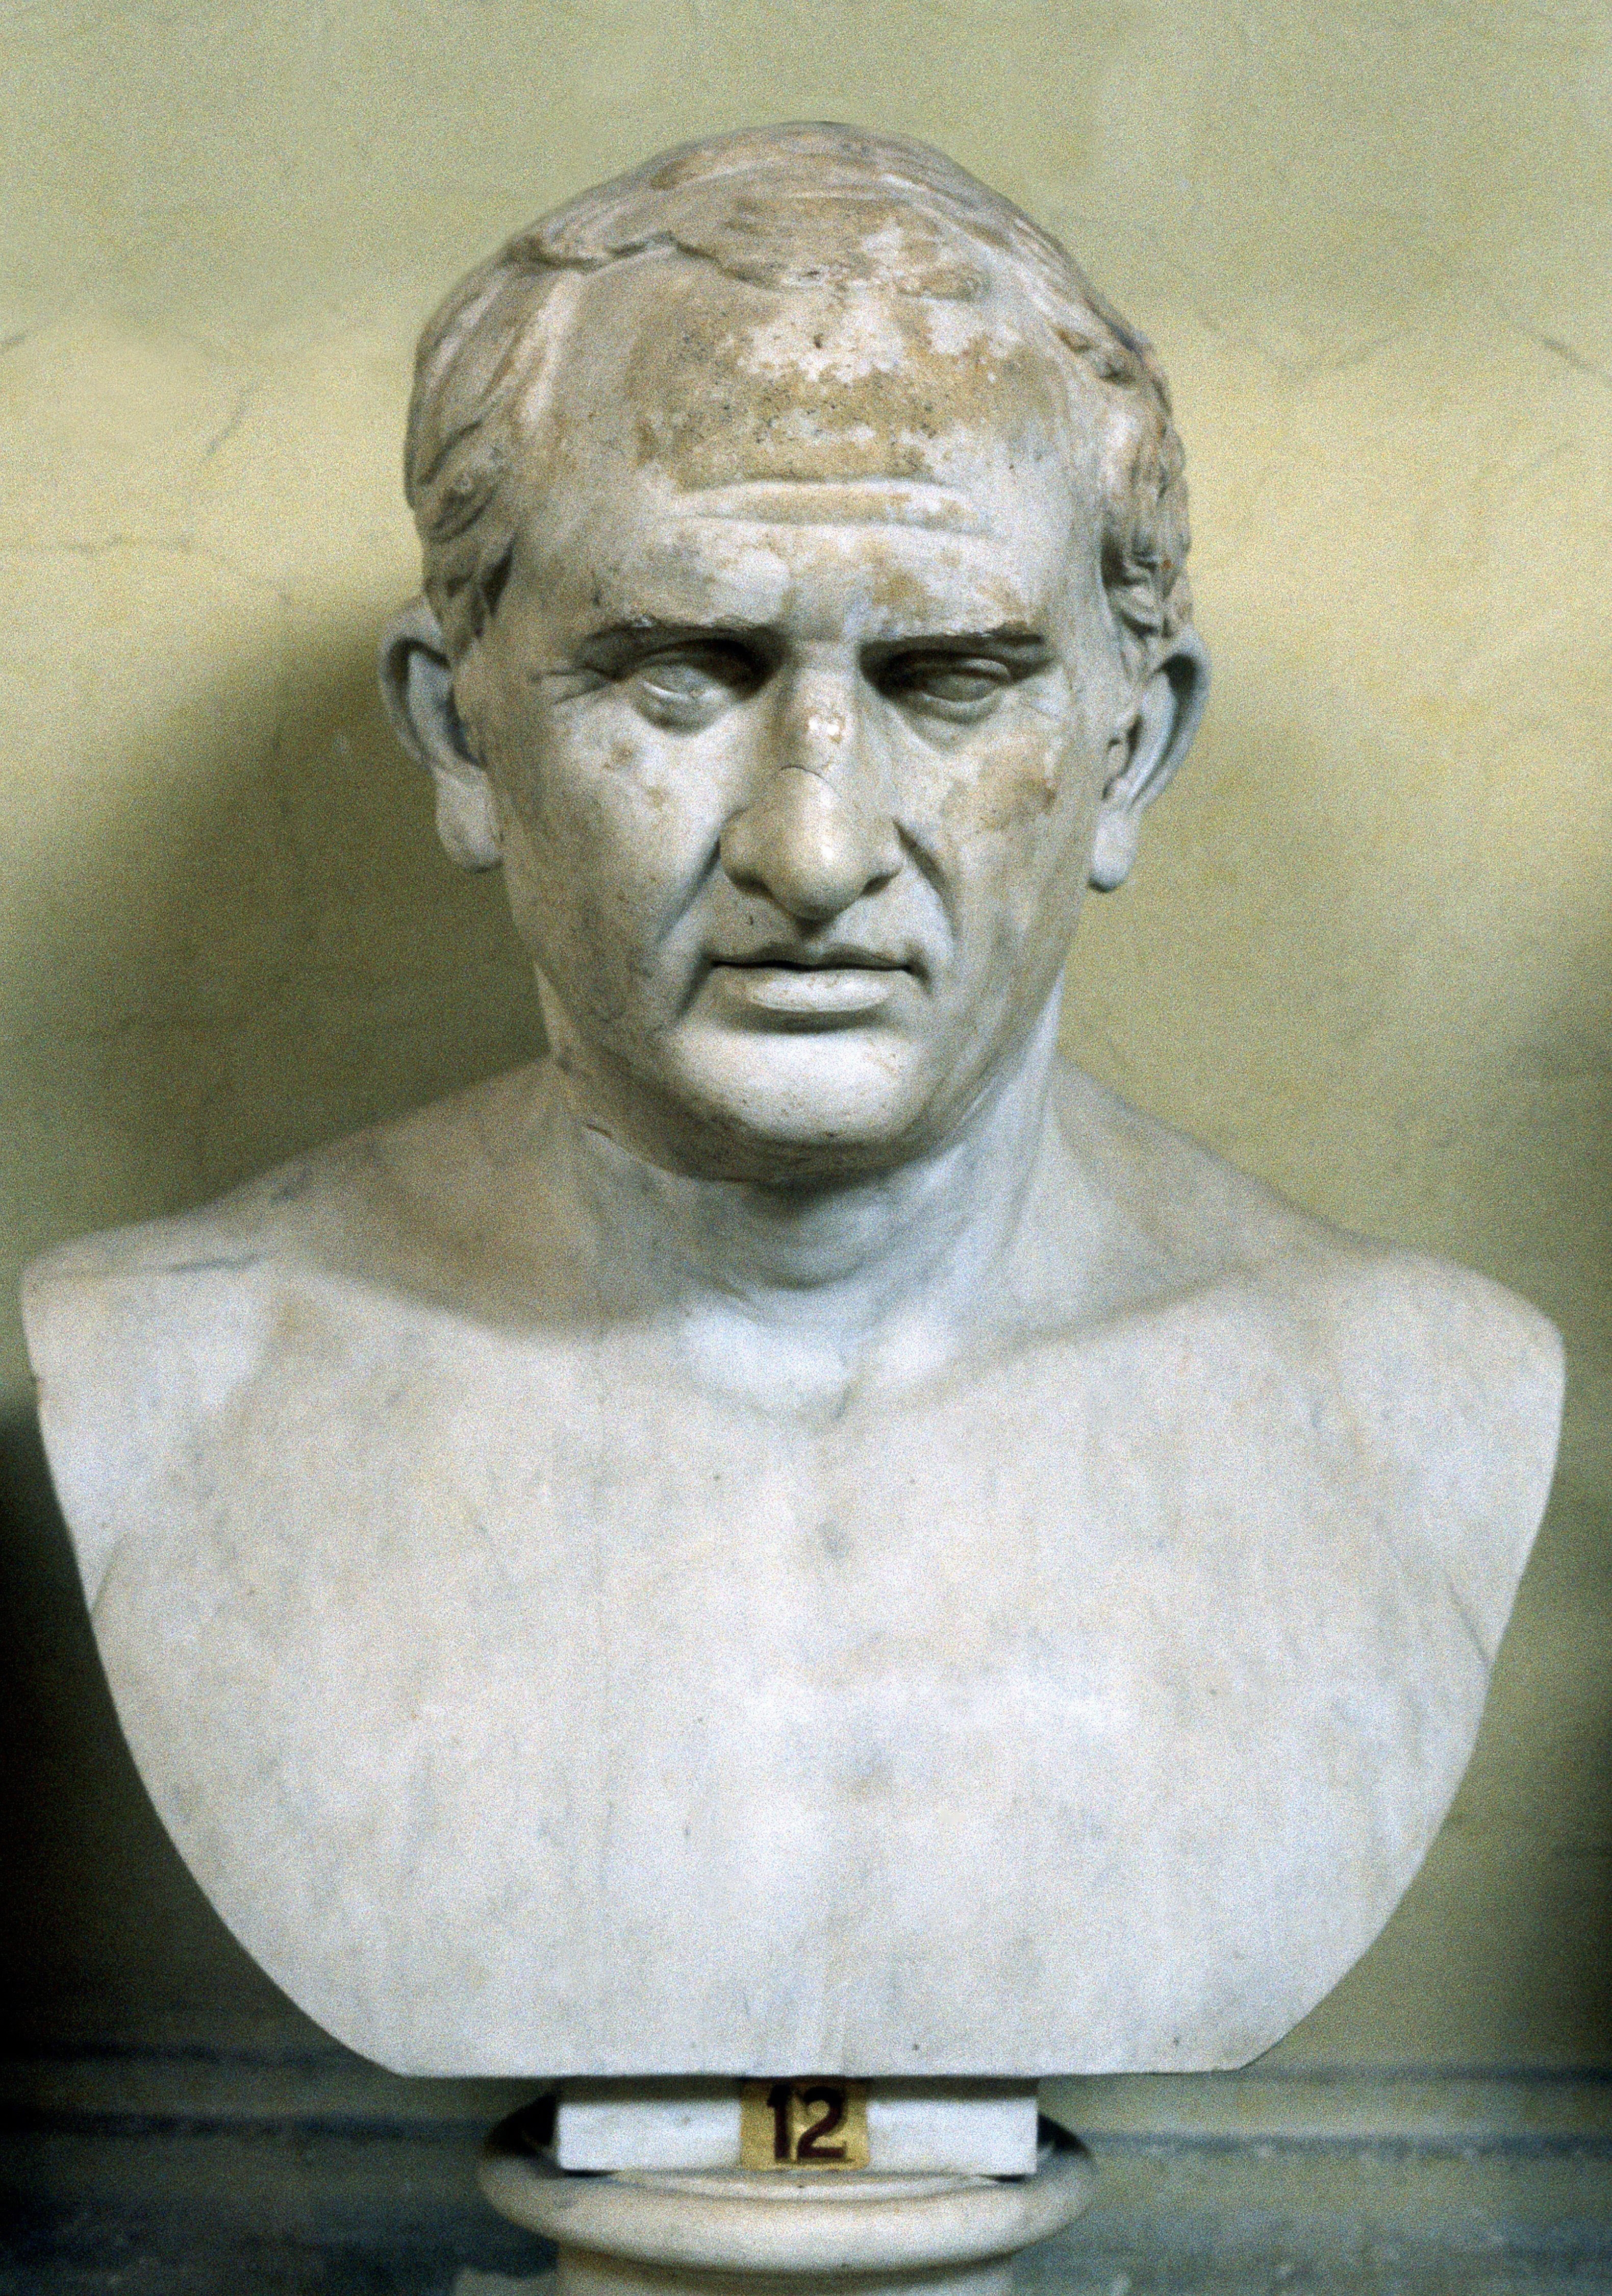 ancient rome and roman statesman cicero What the lessons of the roman empire can teach us about donald trump thomas jefferson, george washington and alexander hamilton - the 18th-century equivalents of cicero the balance of power between senators and tribunes in the republic of ancient rome proved impossible to sustain.